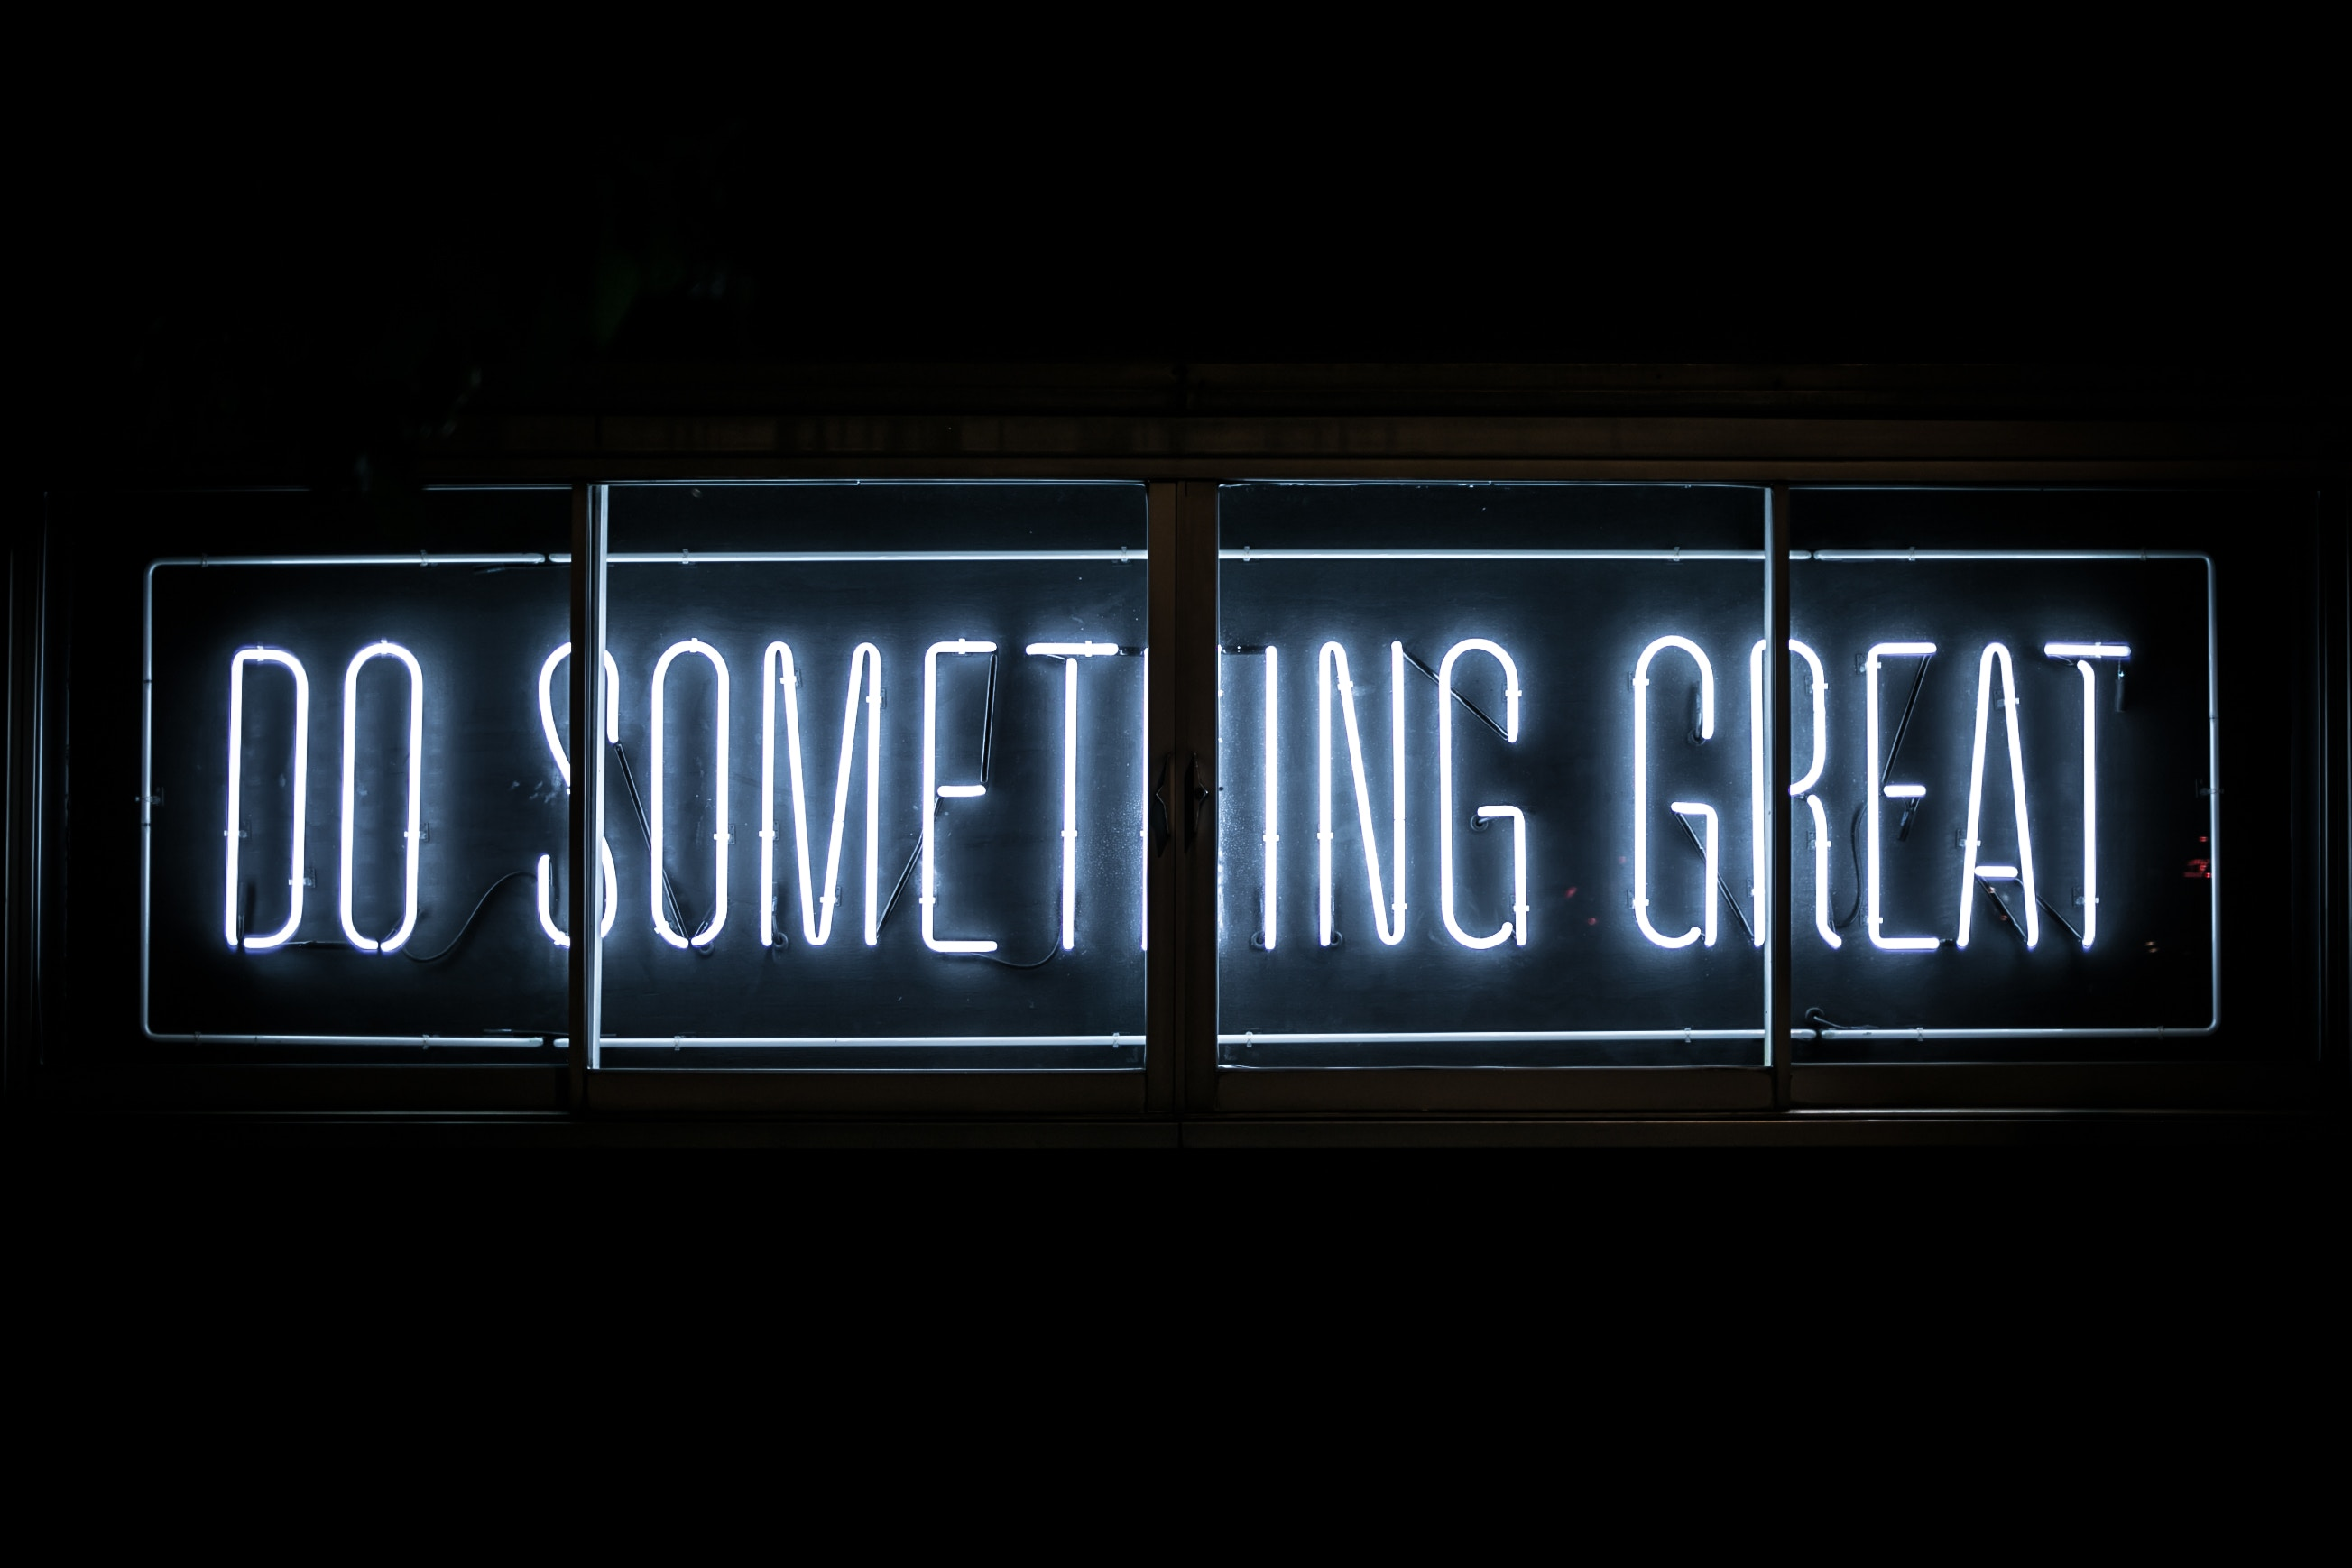 do-something-great-neon-sign